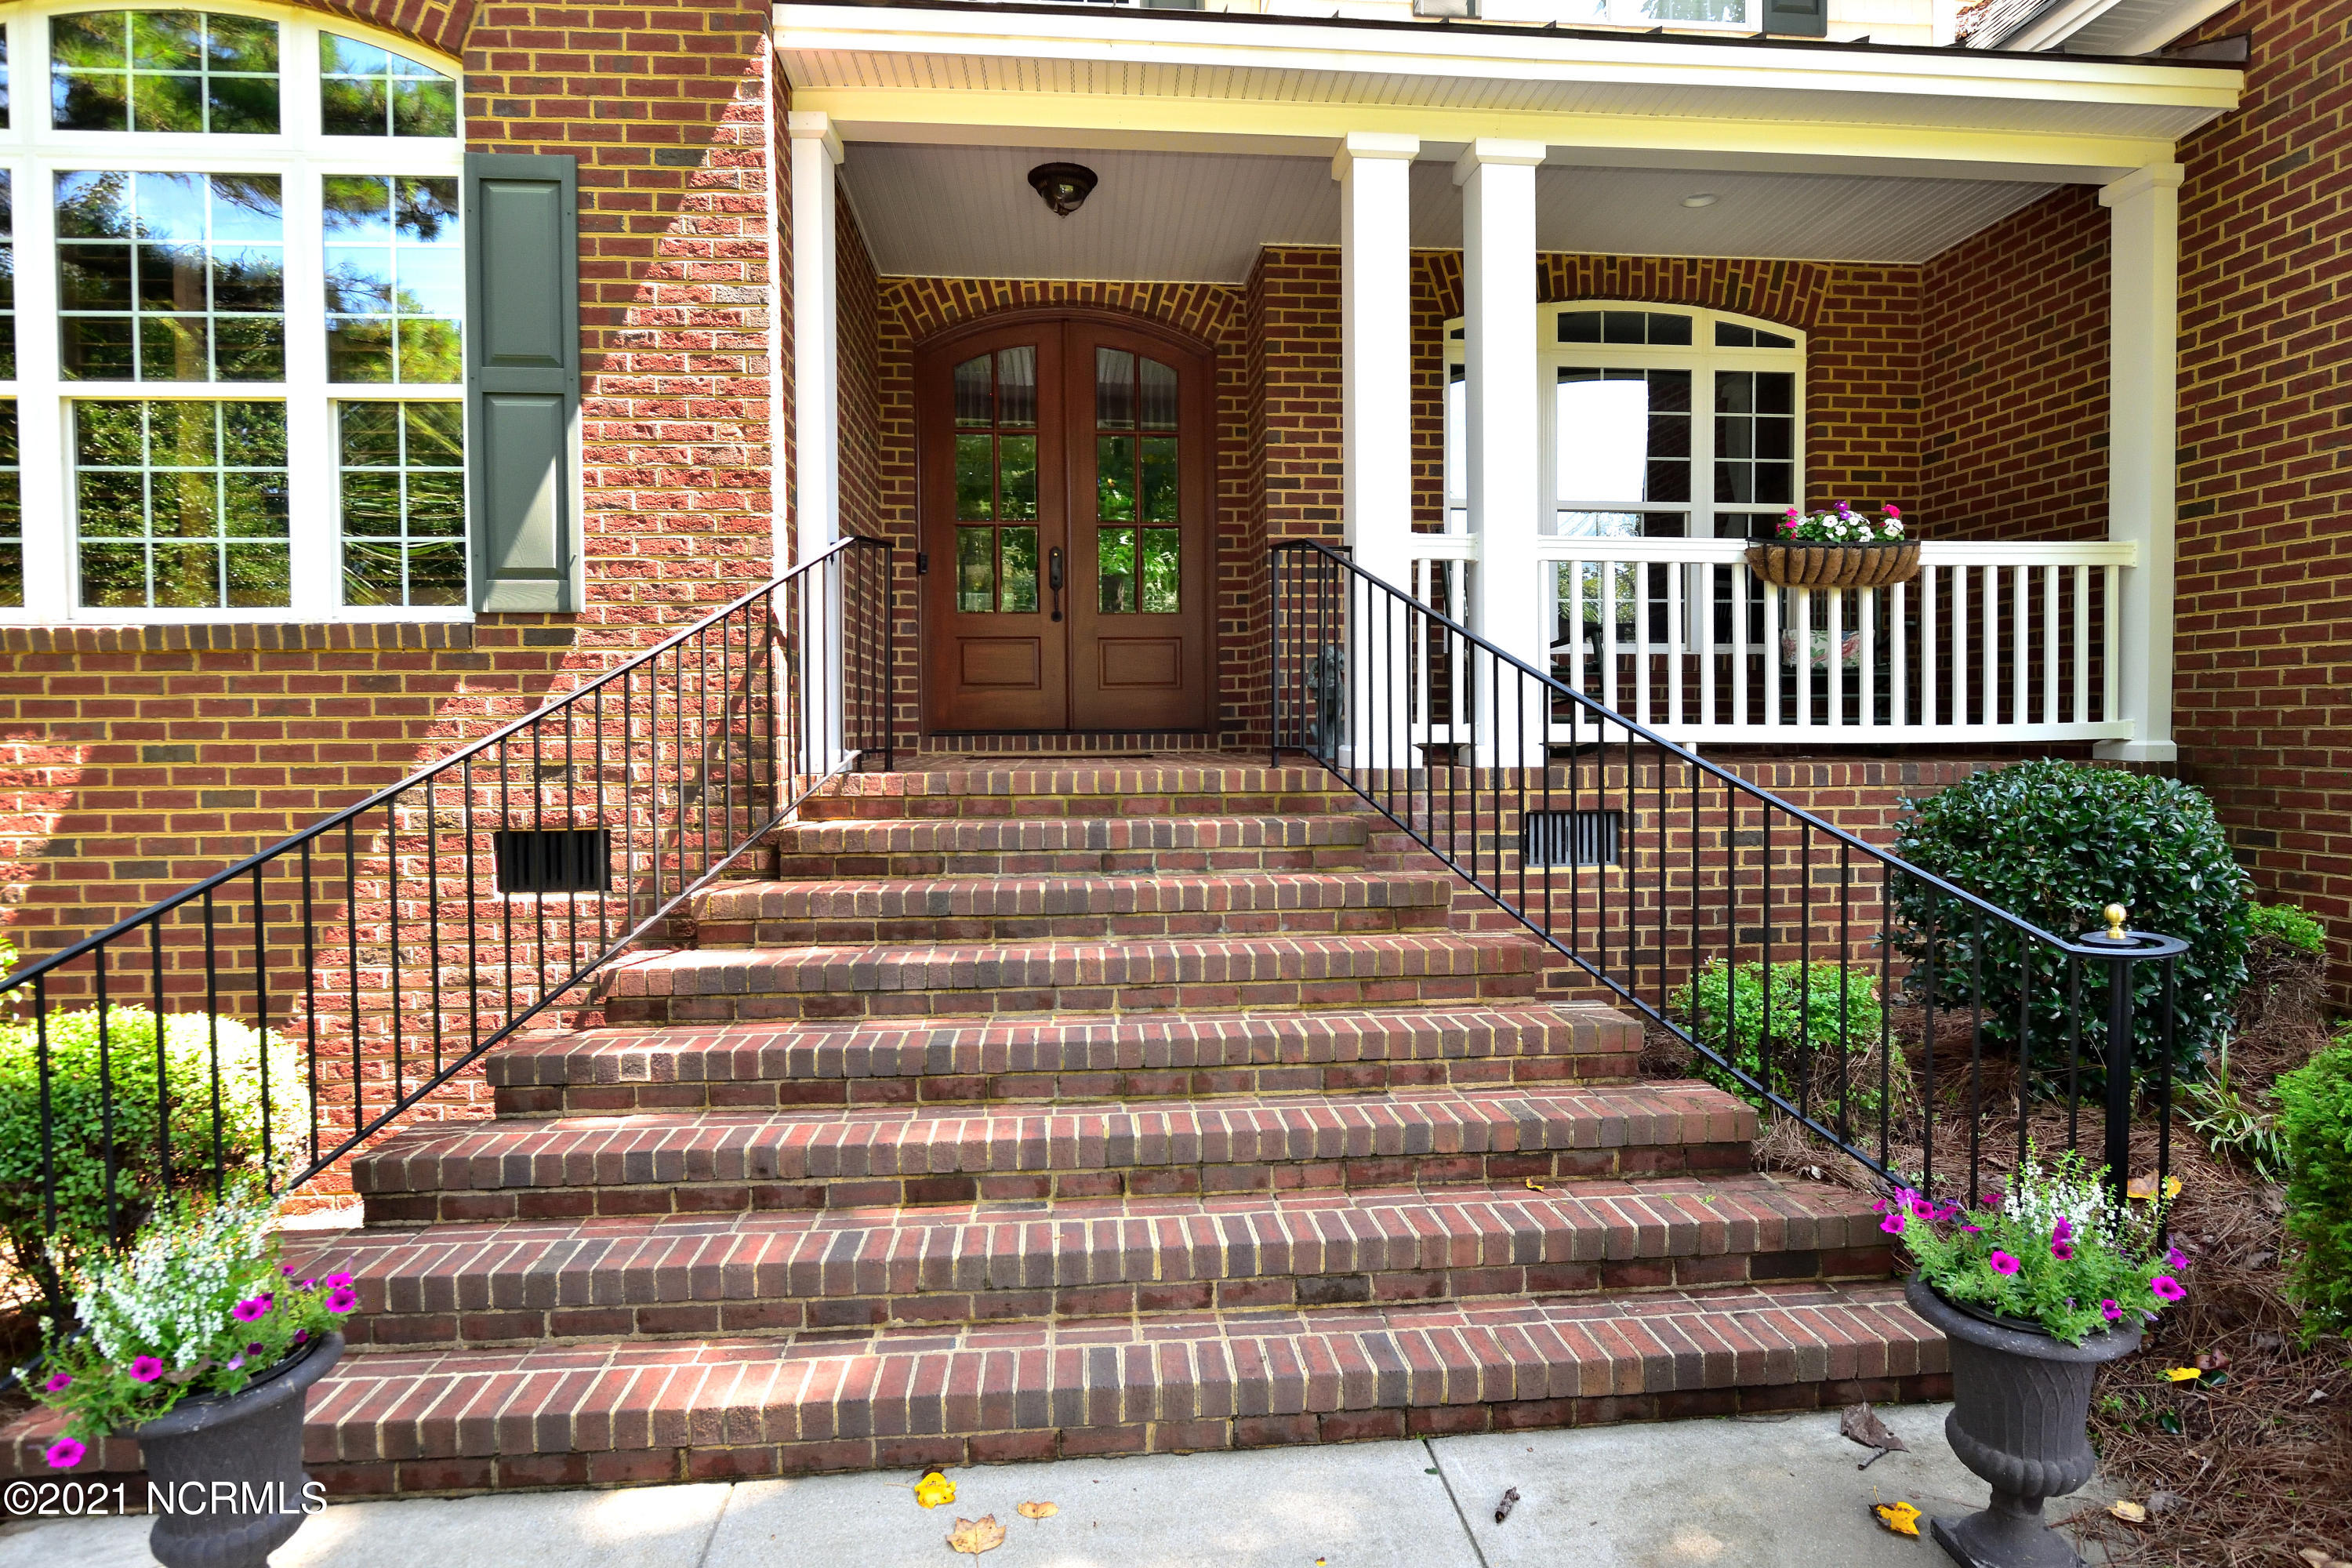 3312 Timber Creek Drive, Rocky Mount, North Carolina 27804, 5 Bedrooms Bedrooms, 12 Rooms Rooms,5 BathroomsBathrooms,Single family residence,For sale,Timber Creek,100285661